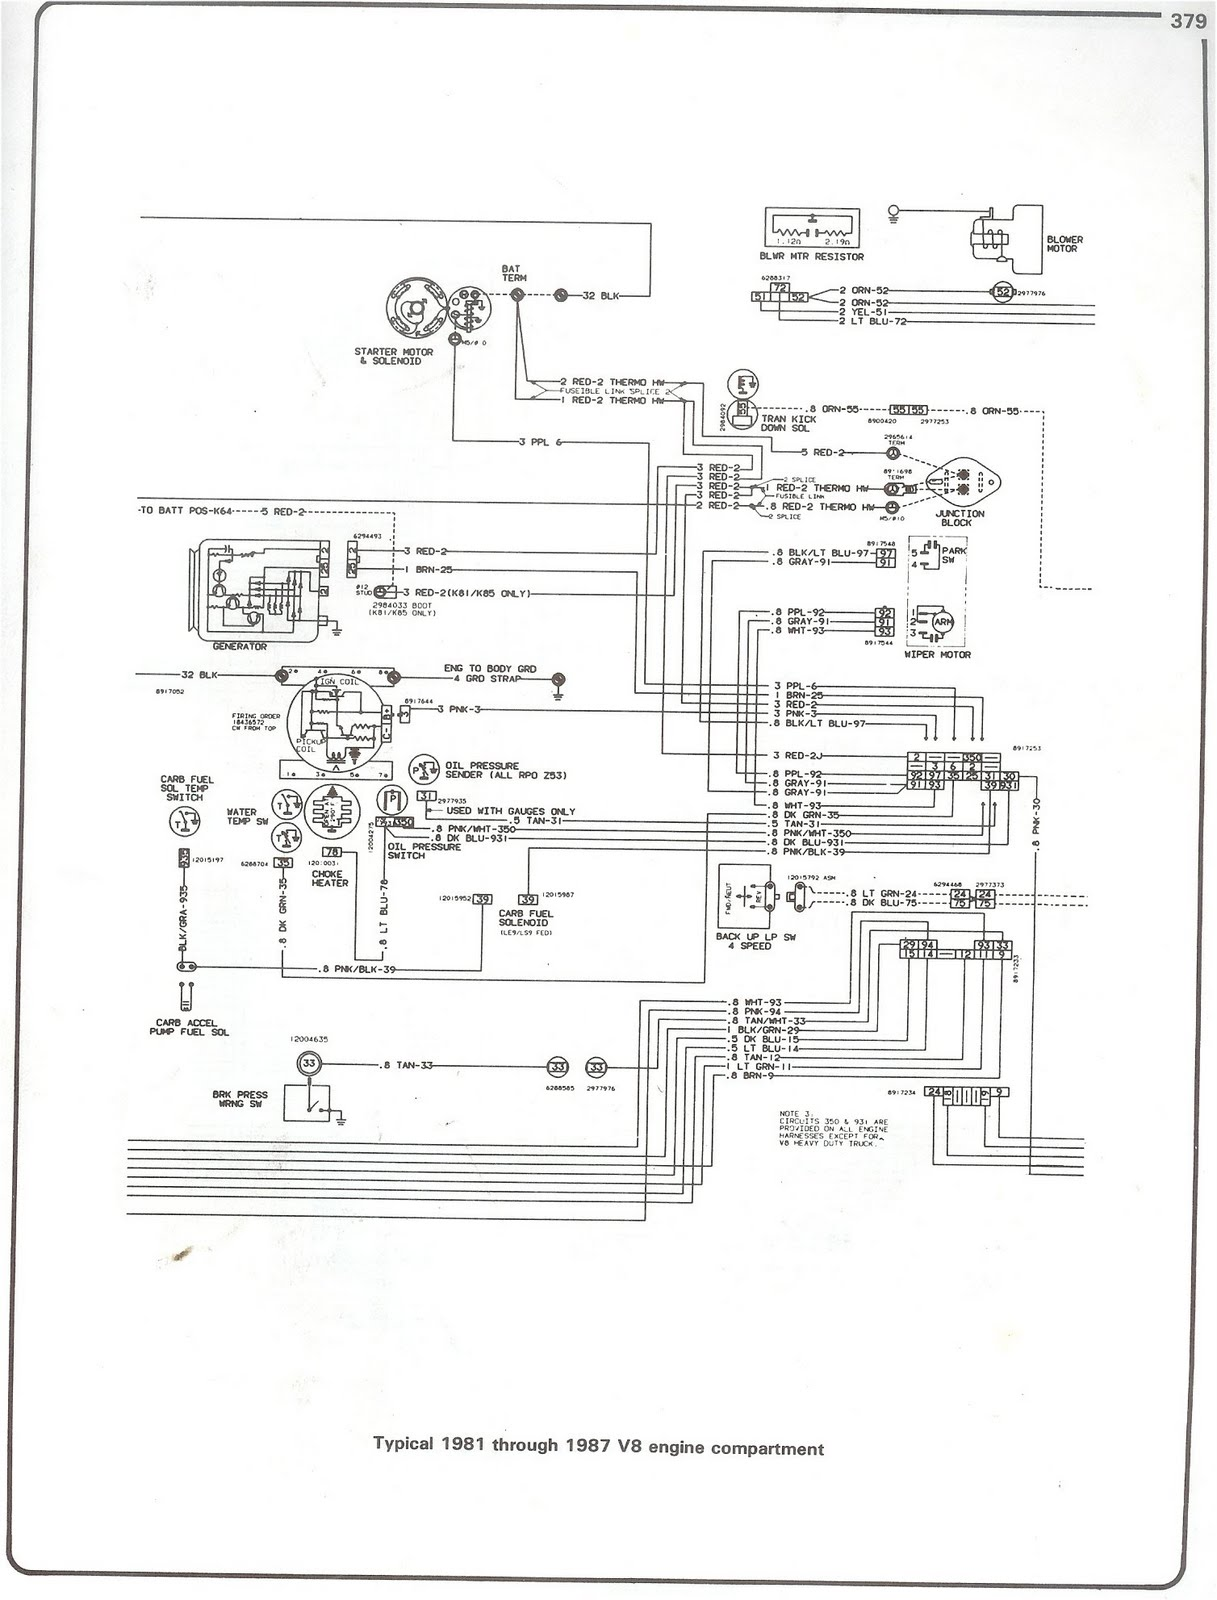 hight resolution of 73 caprice wiring diagram wiring library 73 caprice 4 door 85 chevy caprice fuse panel